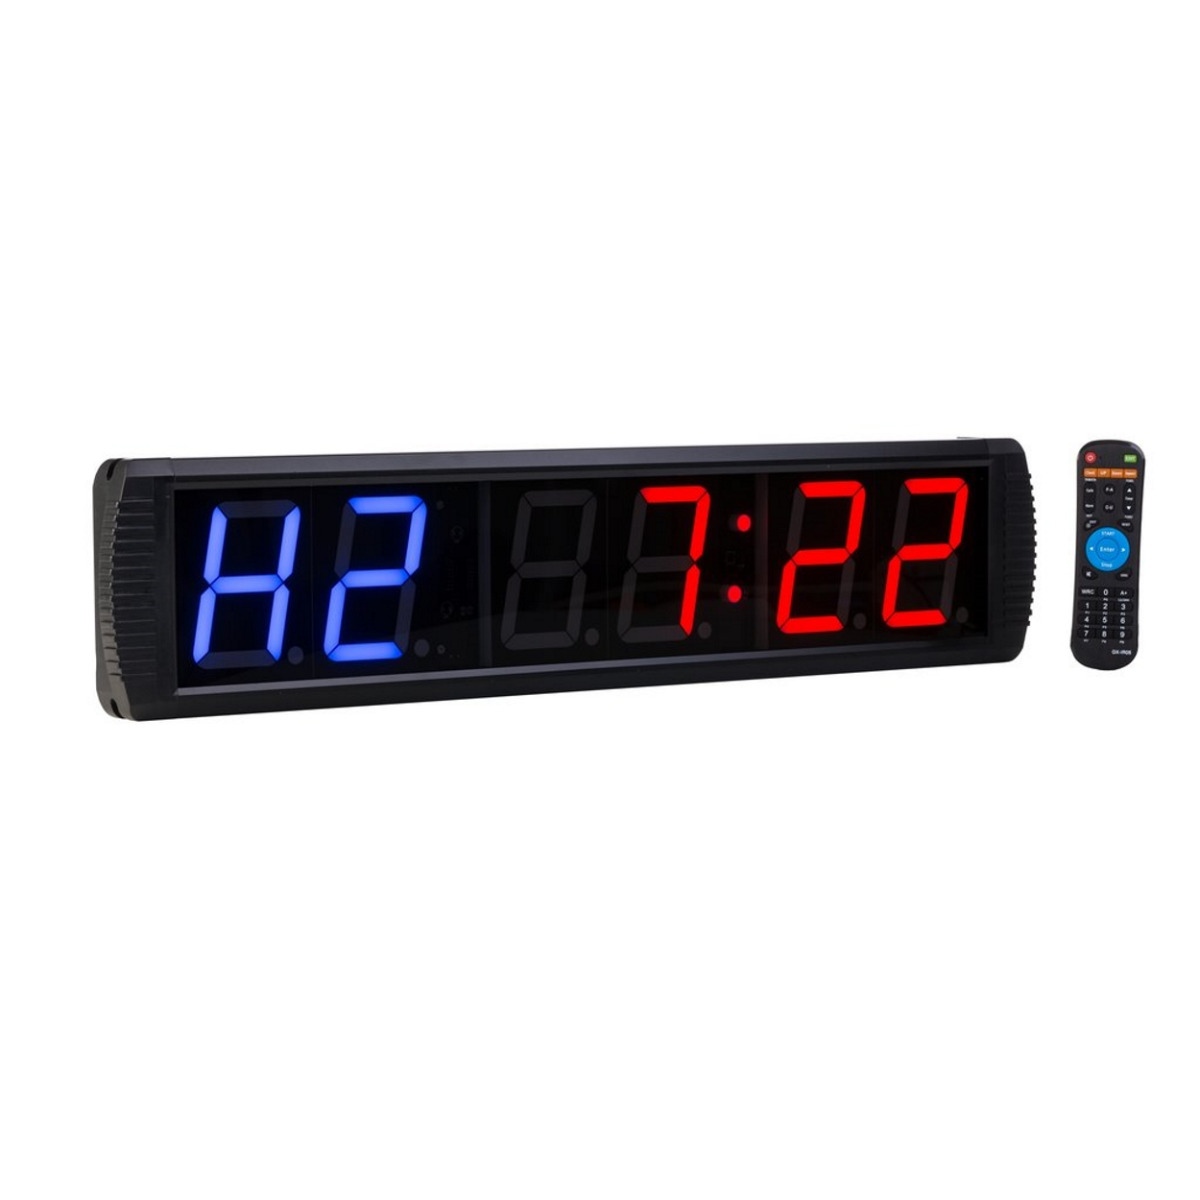 Digital Interval Wall Timer for Gyms, Sports Clubs, Schools & Crossfit (6 Digit)